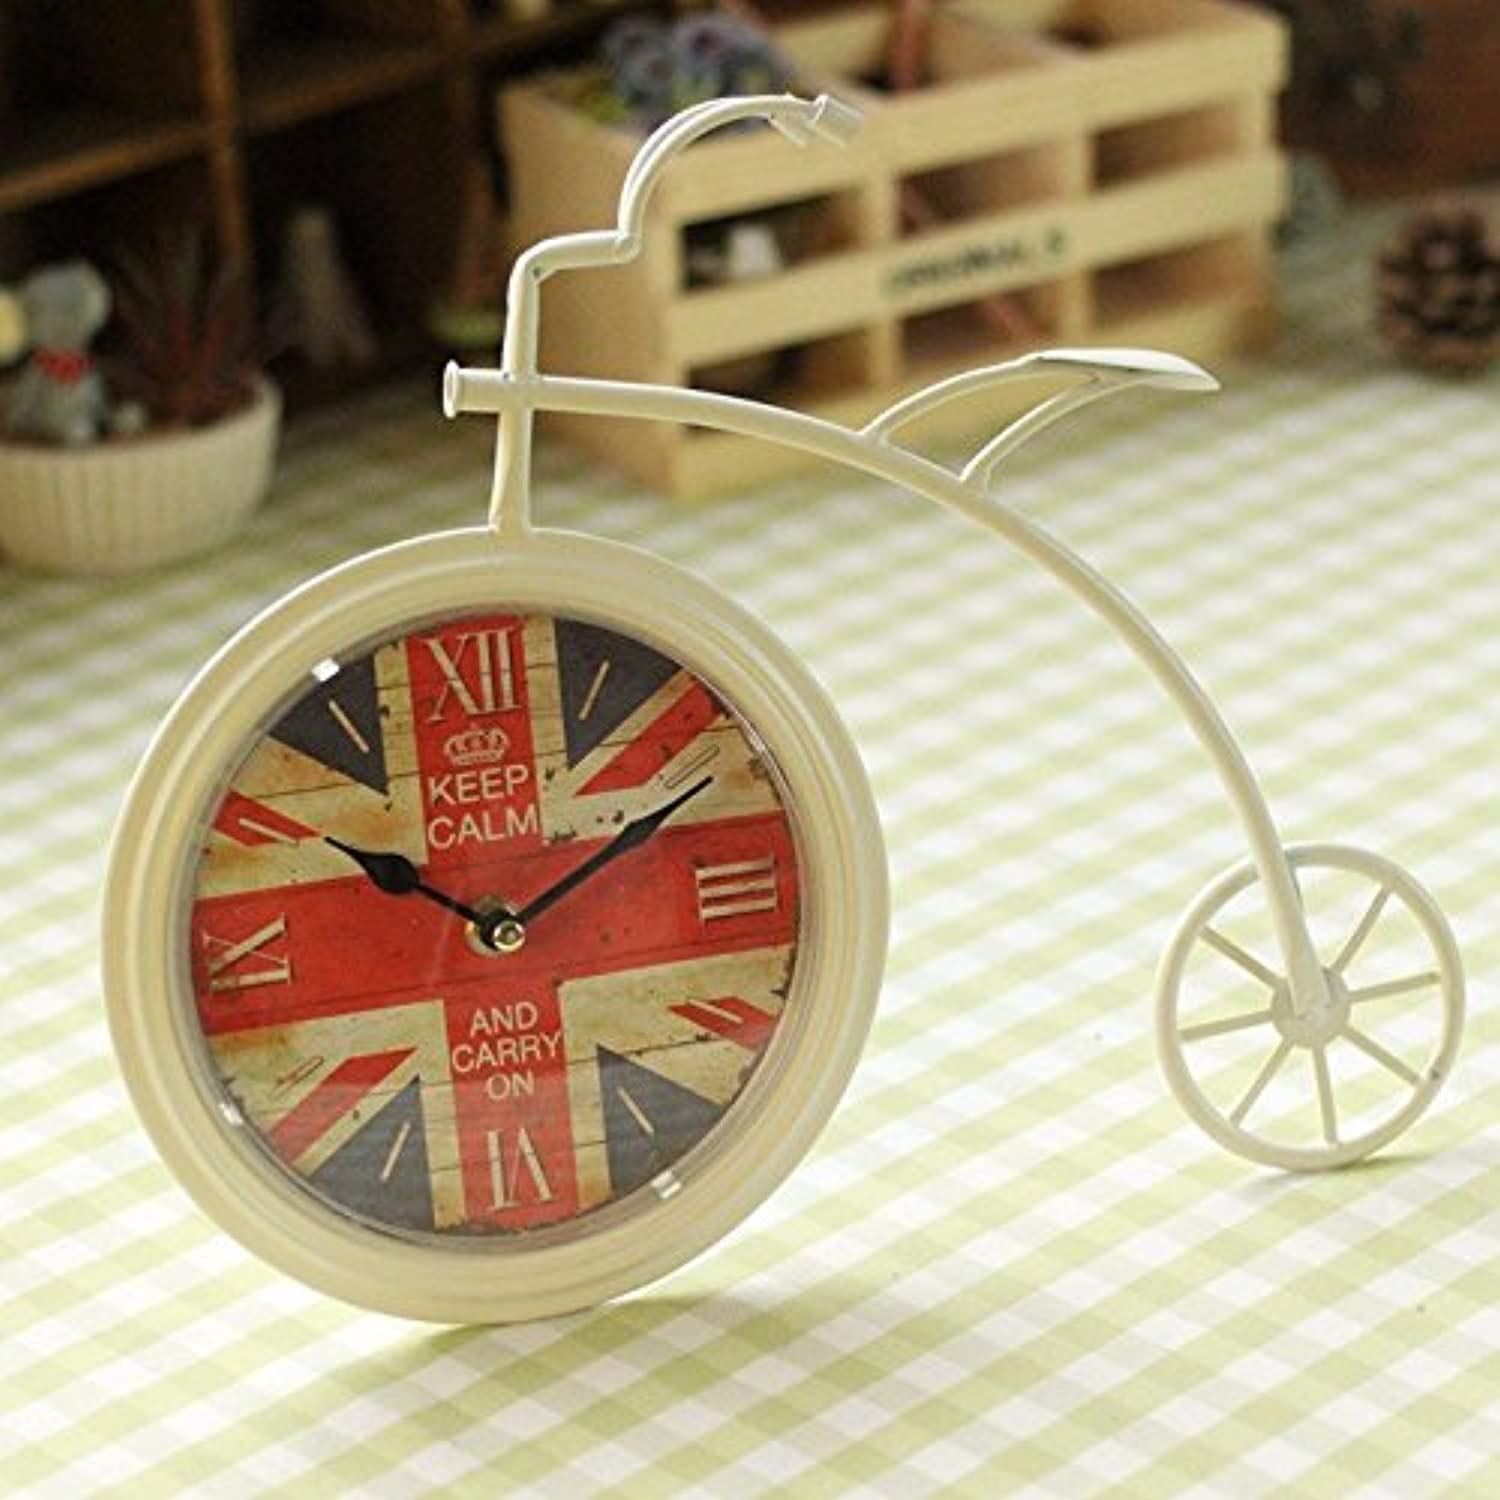 OLQMY-Luxury Home Decoration Home Decoration Decoration, Desktop Clock Decoration, Gifts,A